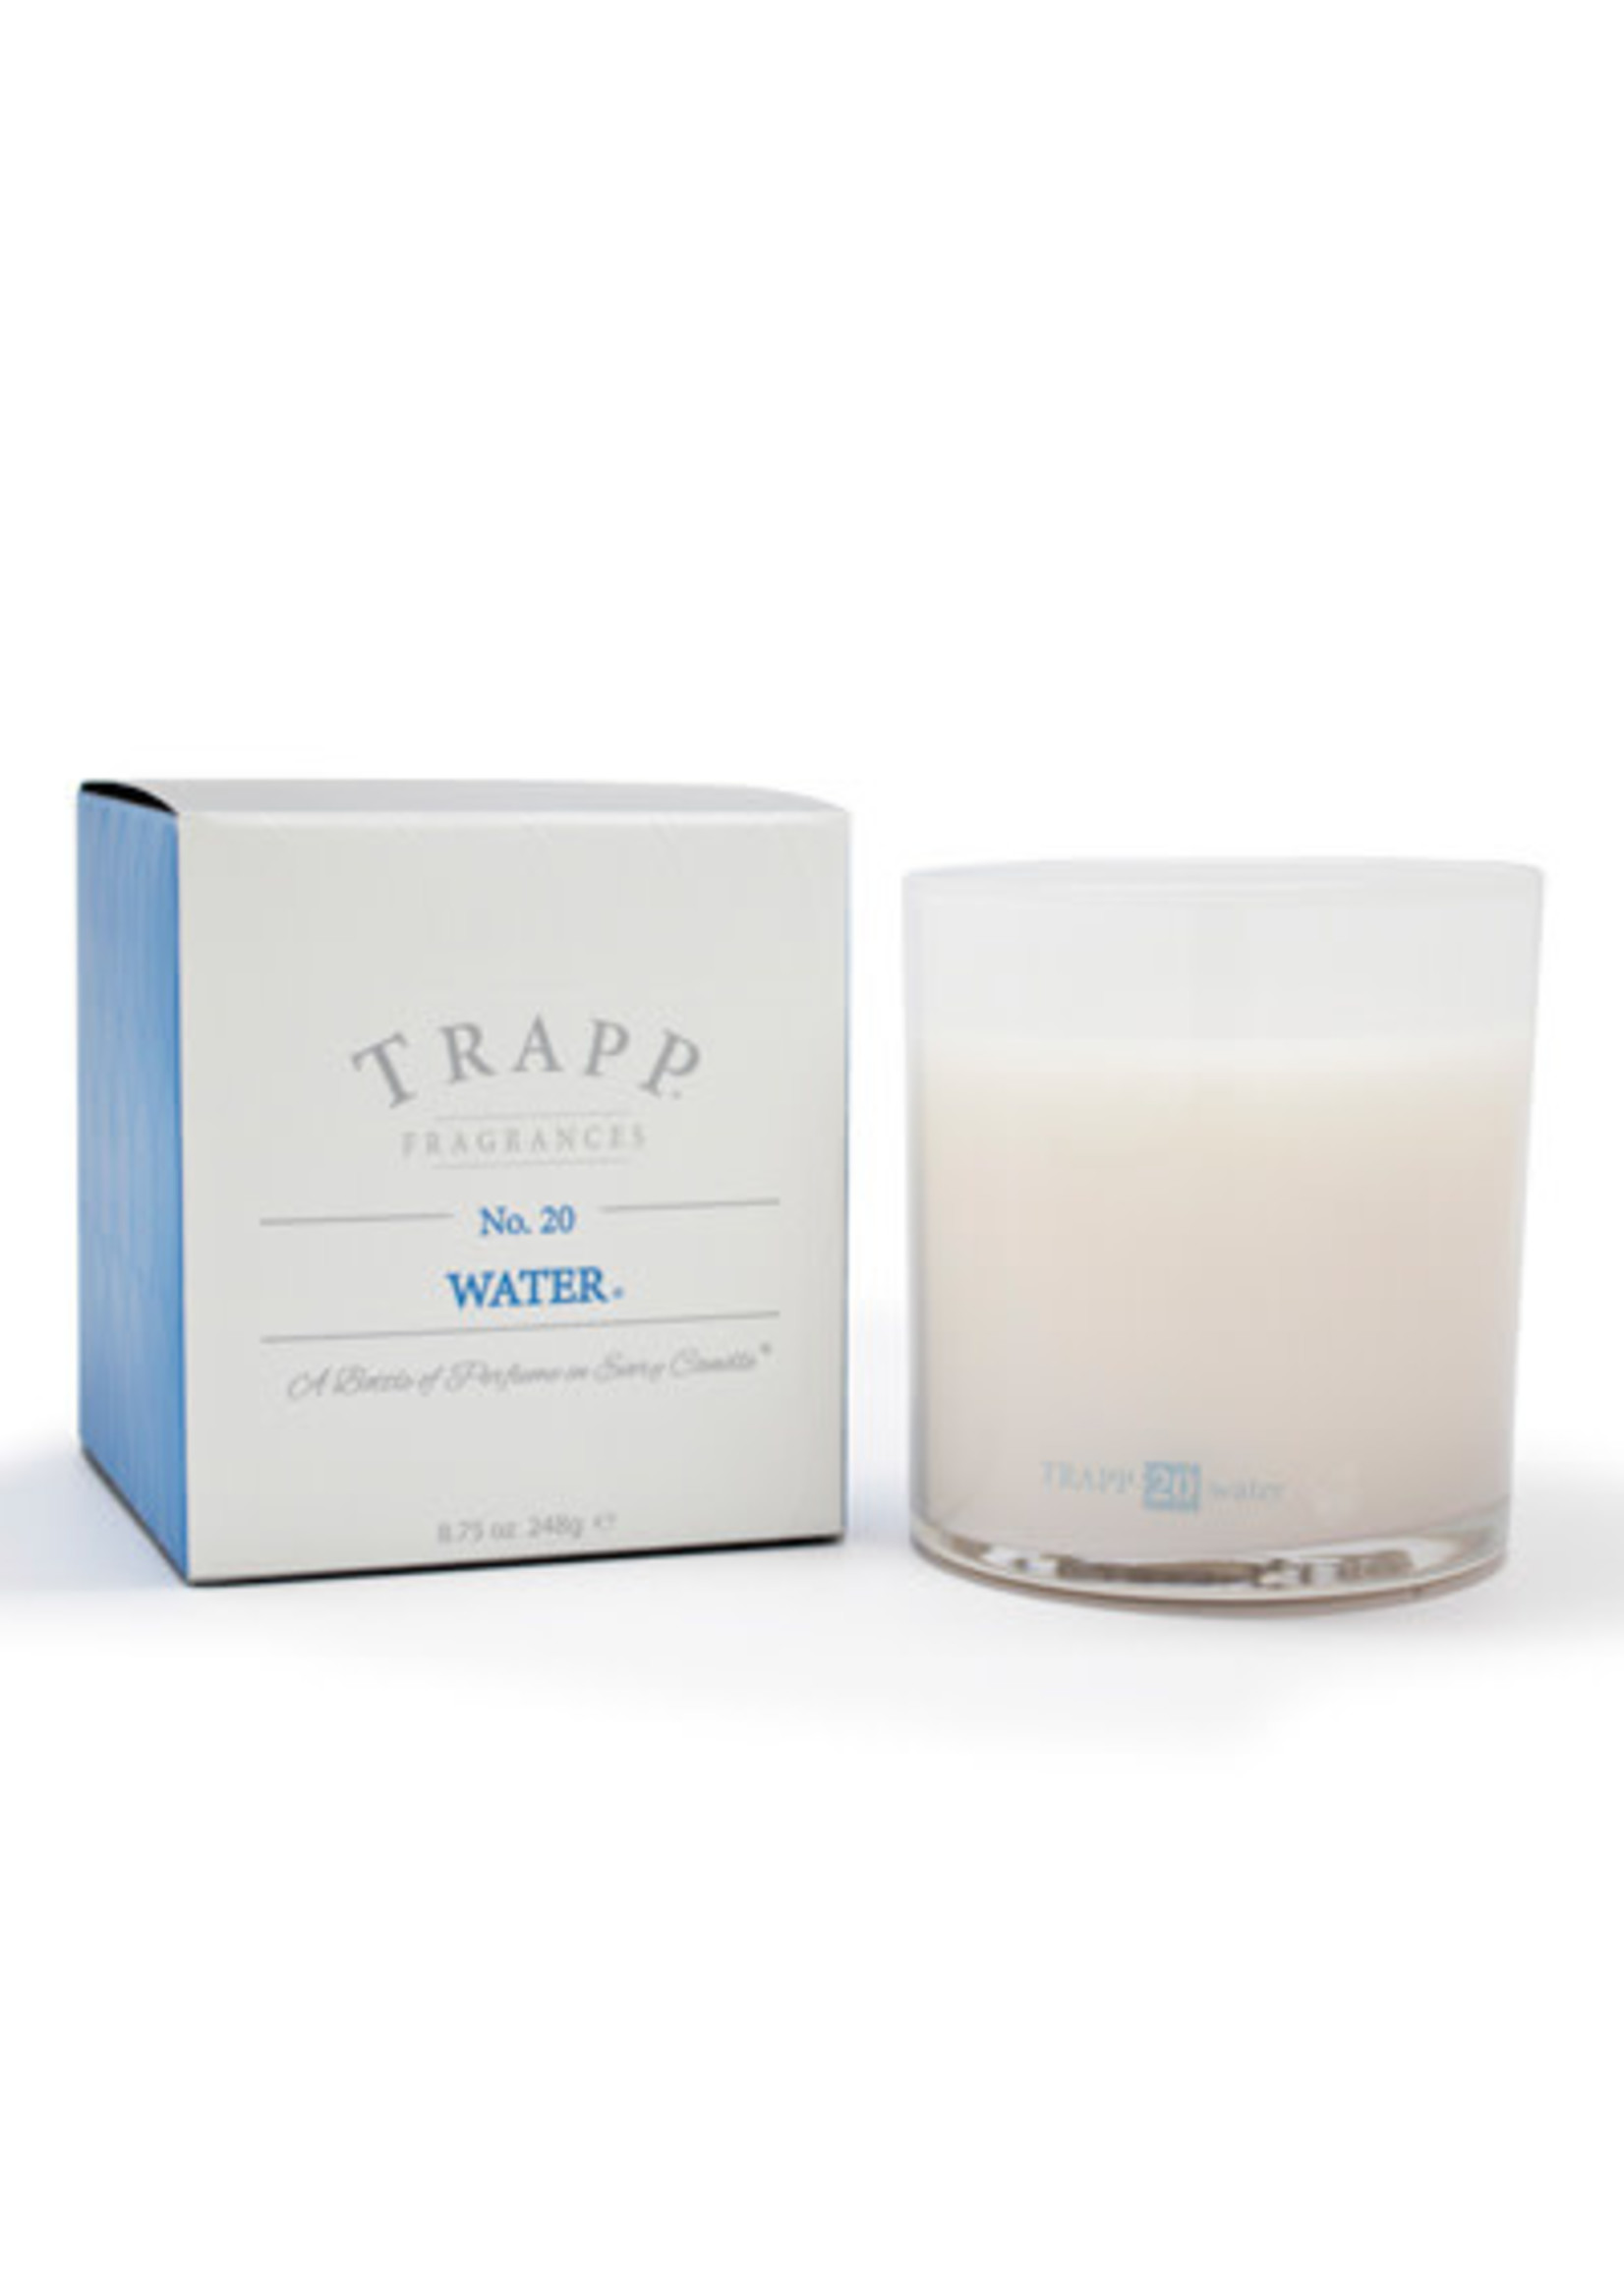 Trapp Candles Ambiance Collection - No. 20 Water - 8.75 oz. Poured Candle